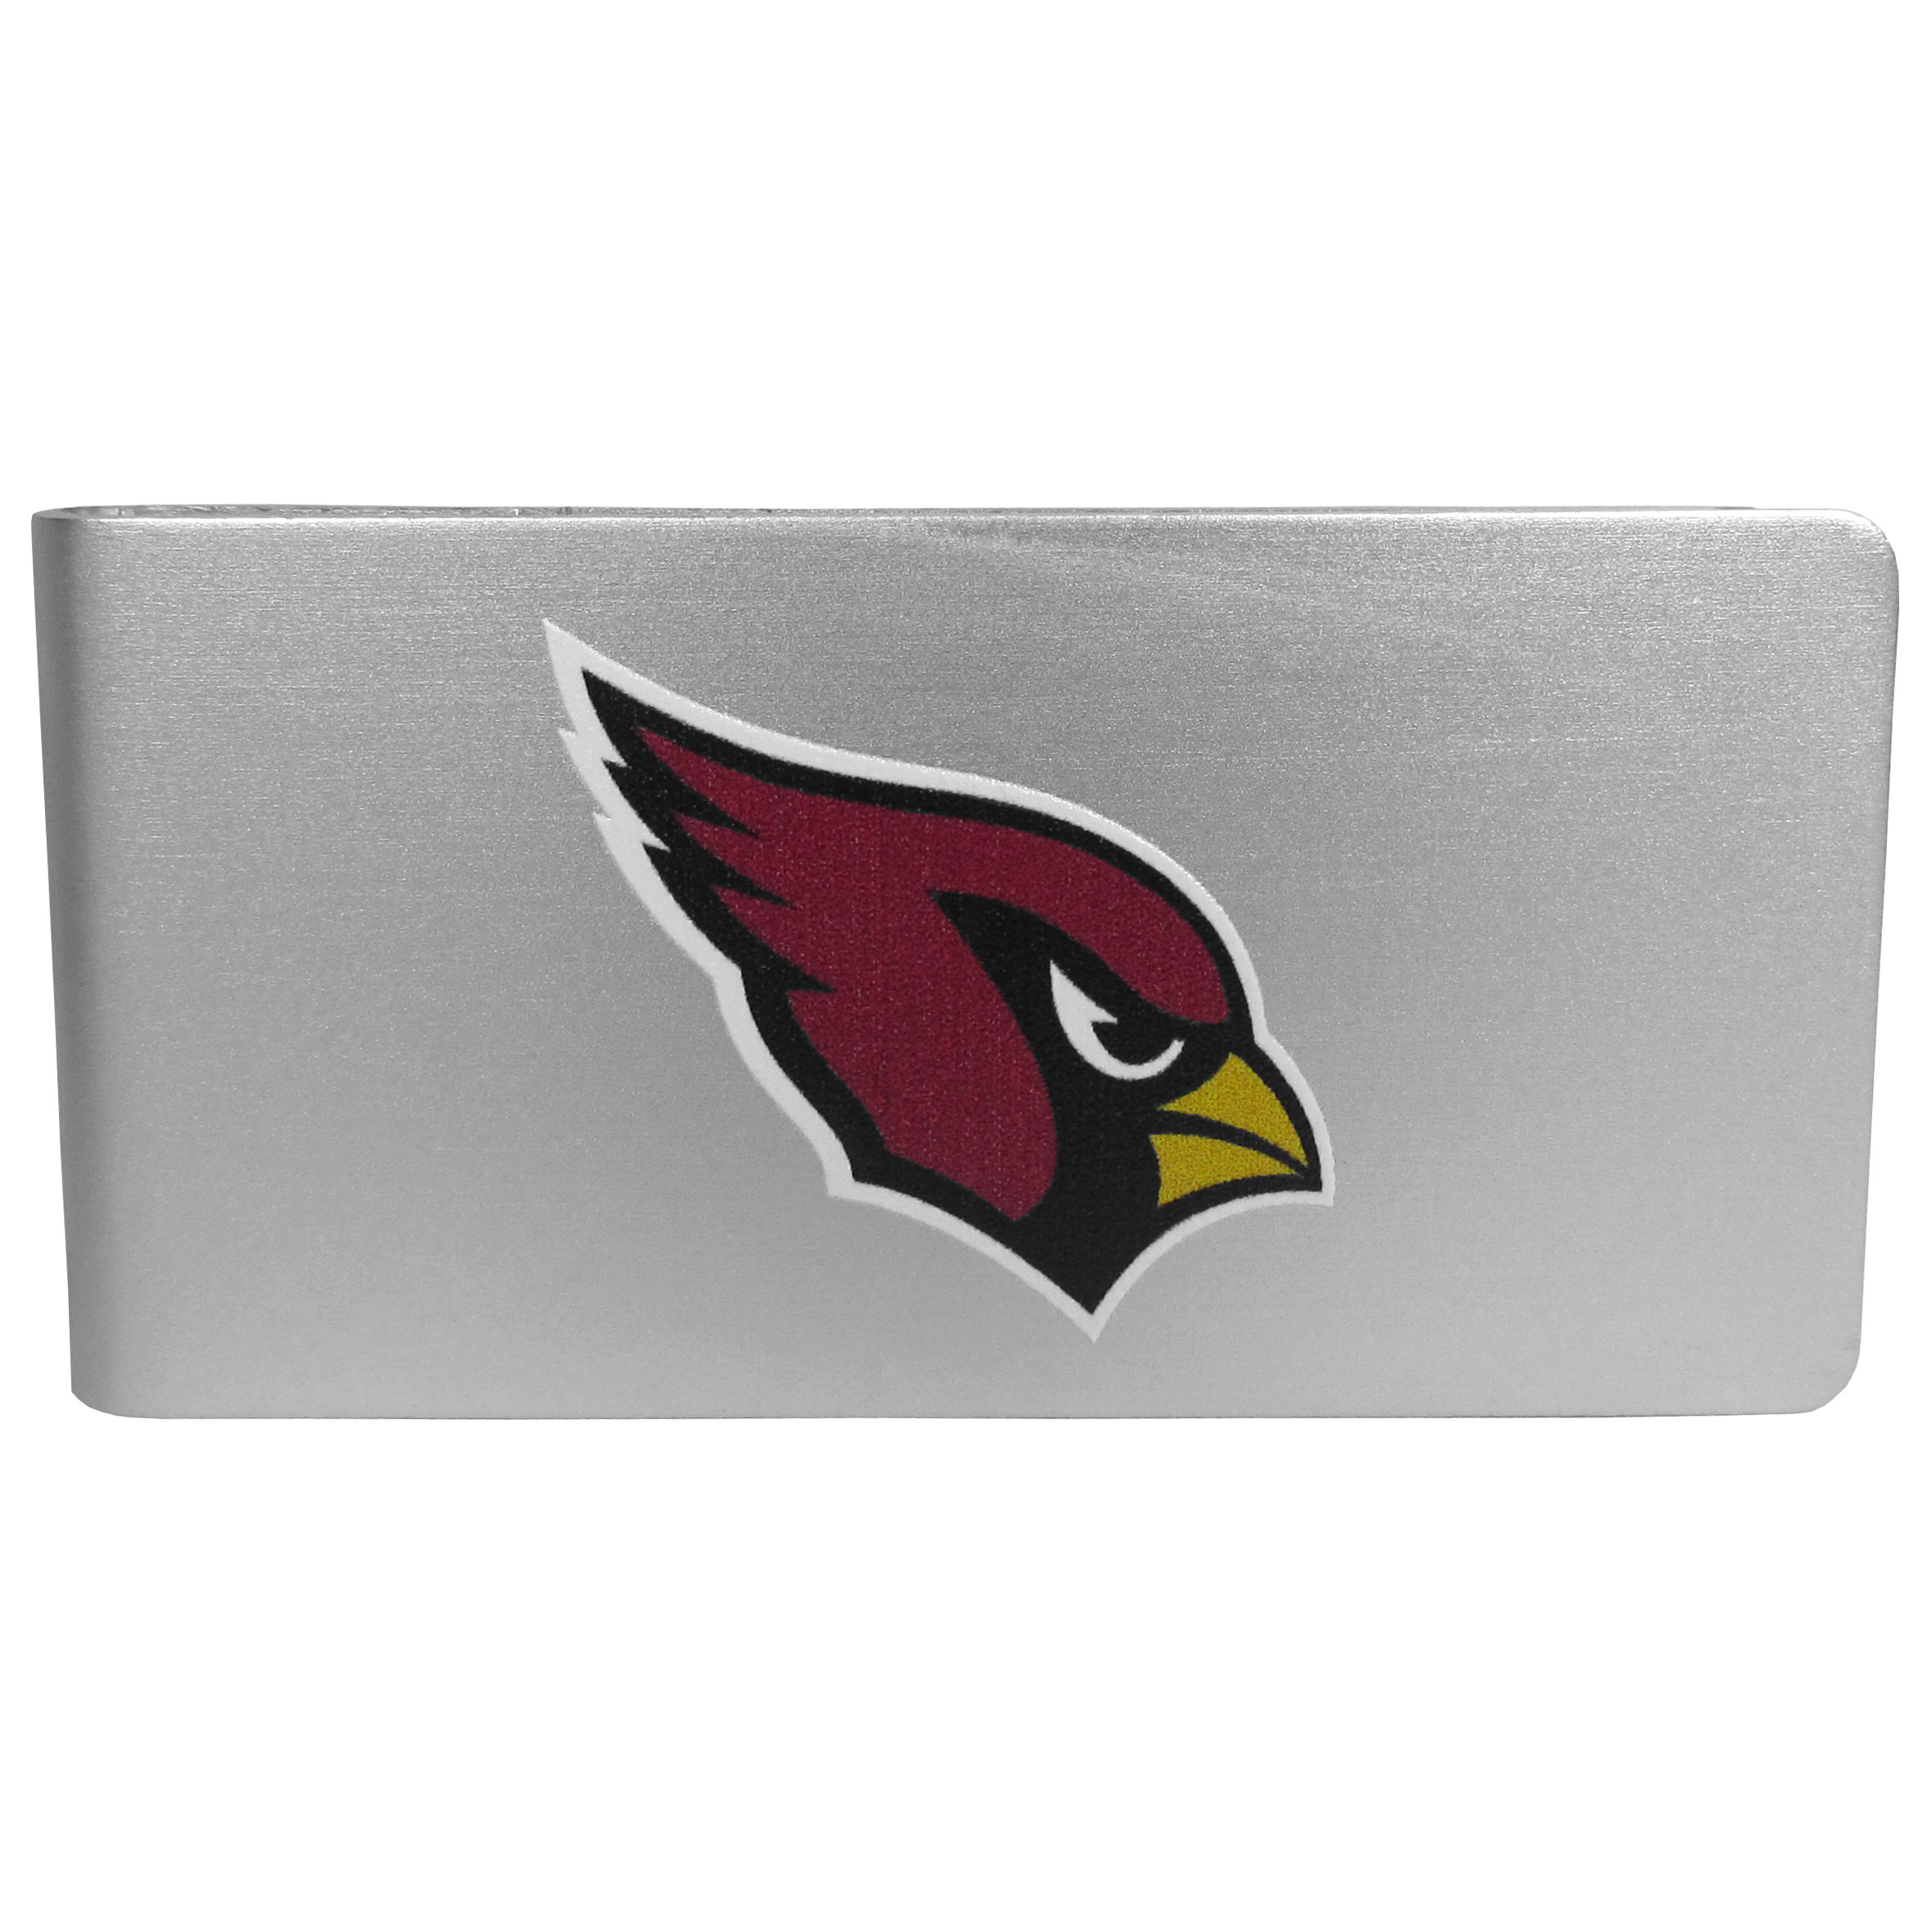 Arizona Cardinals Logo Money Clip - Our brushed metal money clip has classic style and functionality. The attractive clip features the Arizona Cardinals logo expertly printed on front.